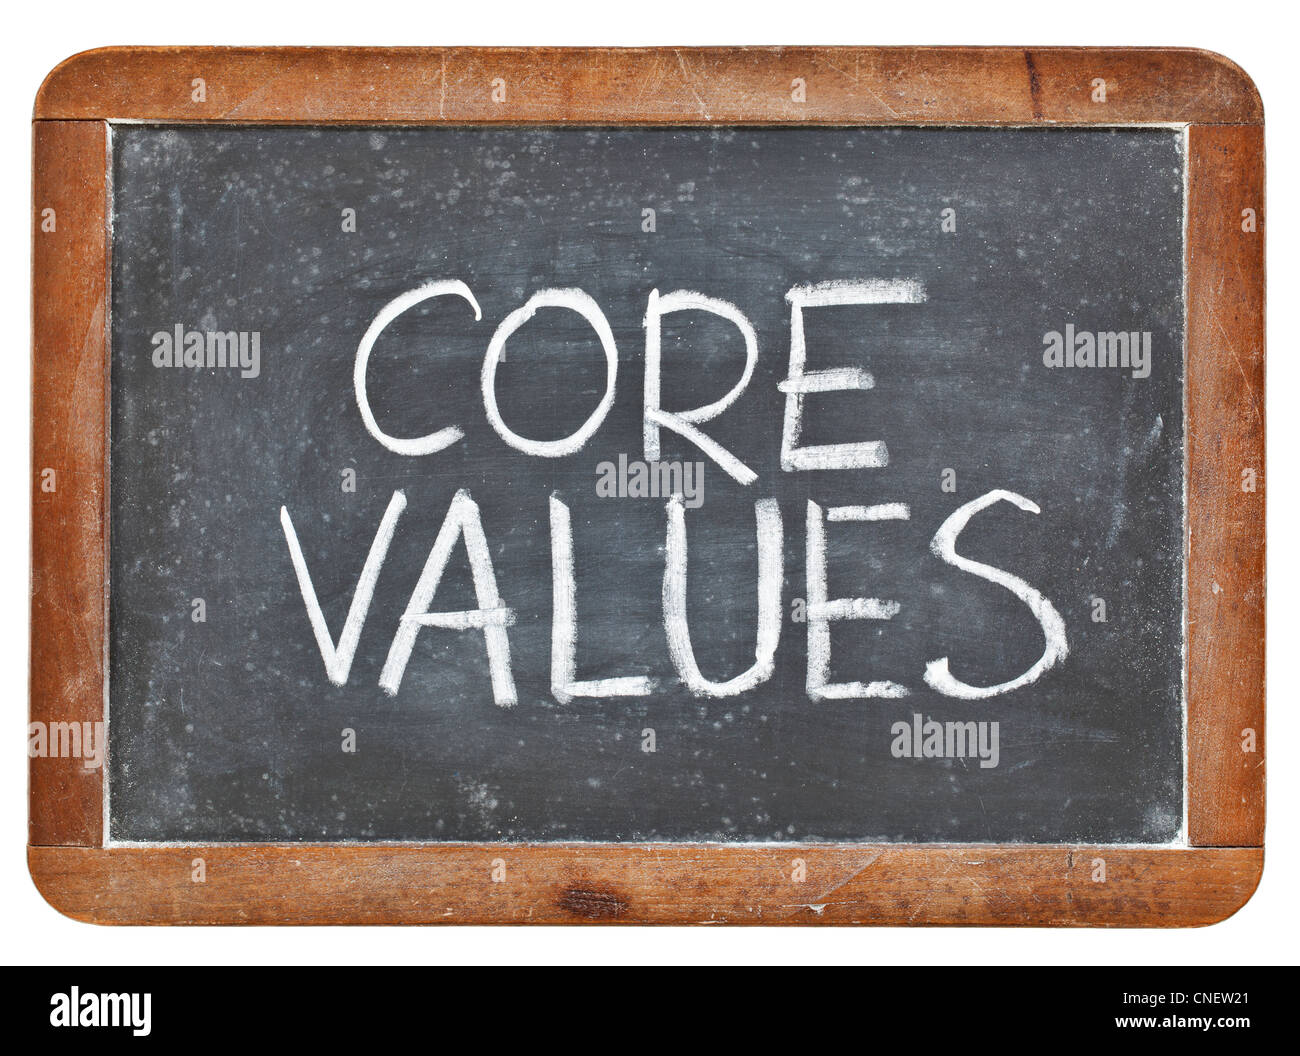 core values phrase - white chalk handwriting on a vintage slate blackboard, isolated - Stock Image